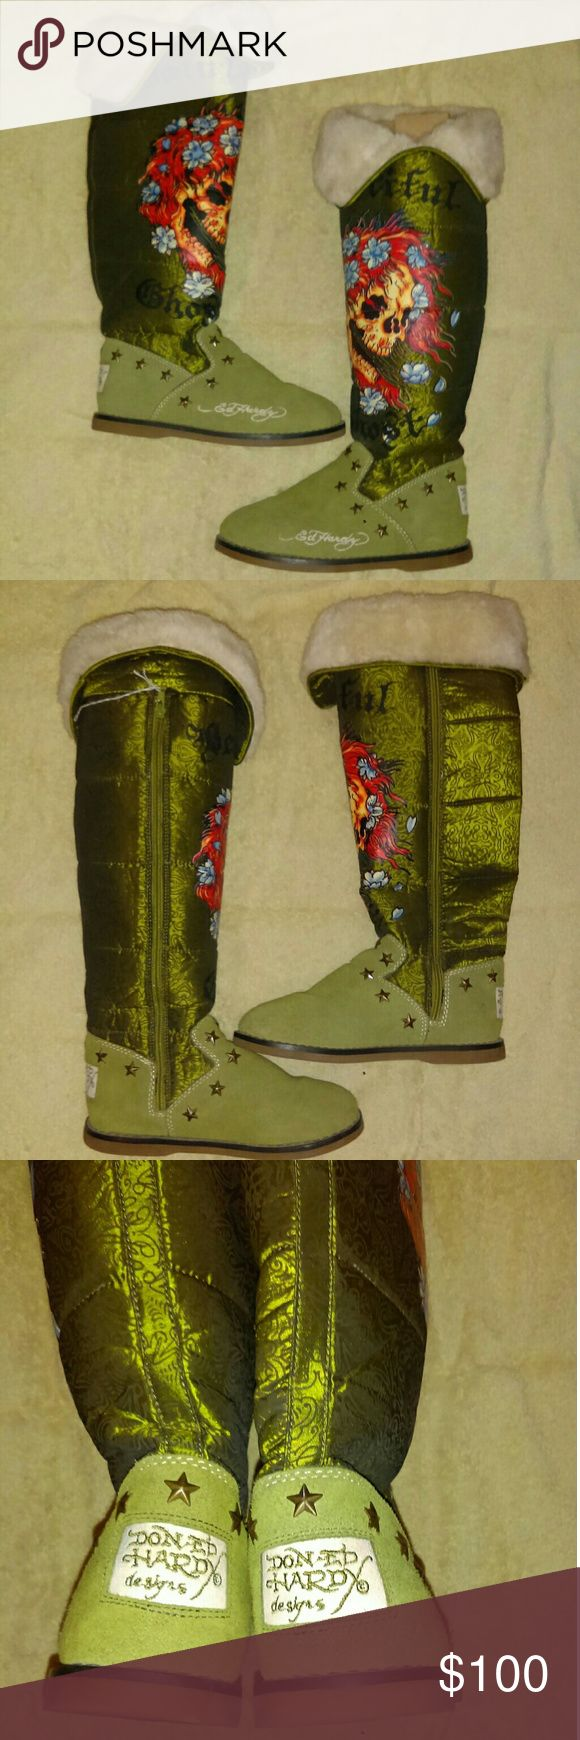 """🌟NWOT Ed Hardy """"Beautiful Ghost"""" tall boots These boots are still like brand new, you can tell just by looking at the fur lining. They are green in color with star rivets around ankle, famous tattoo design in multiple color ink and the writing """"Beautiful Ghost"""" across the front. The top does roll down or can be worn all the way up. Measure 20"""" from the top unfolded to bottom of sole. Literally no wear at all look new. The foot part is suede with a nylon upper. Brand is Ed Hardy by Christian…"""